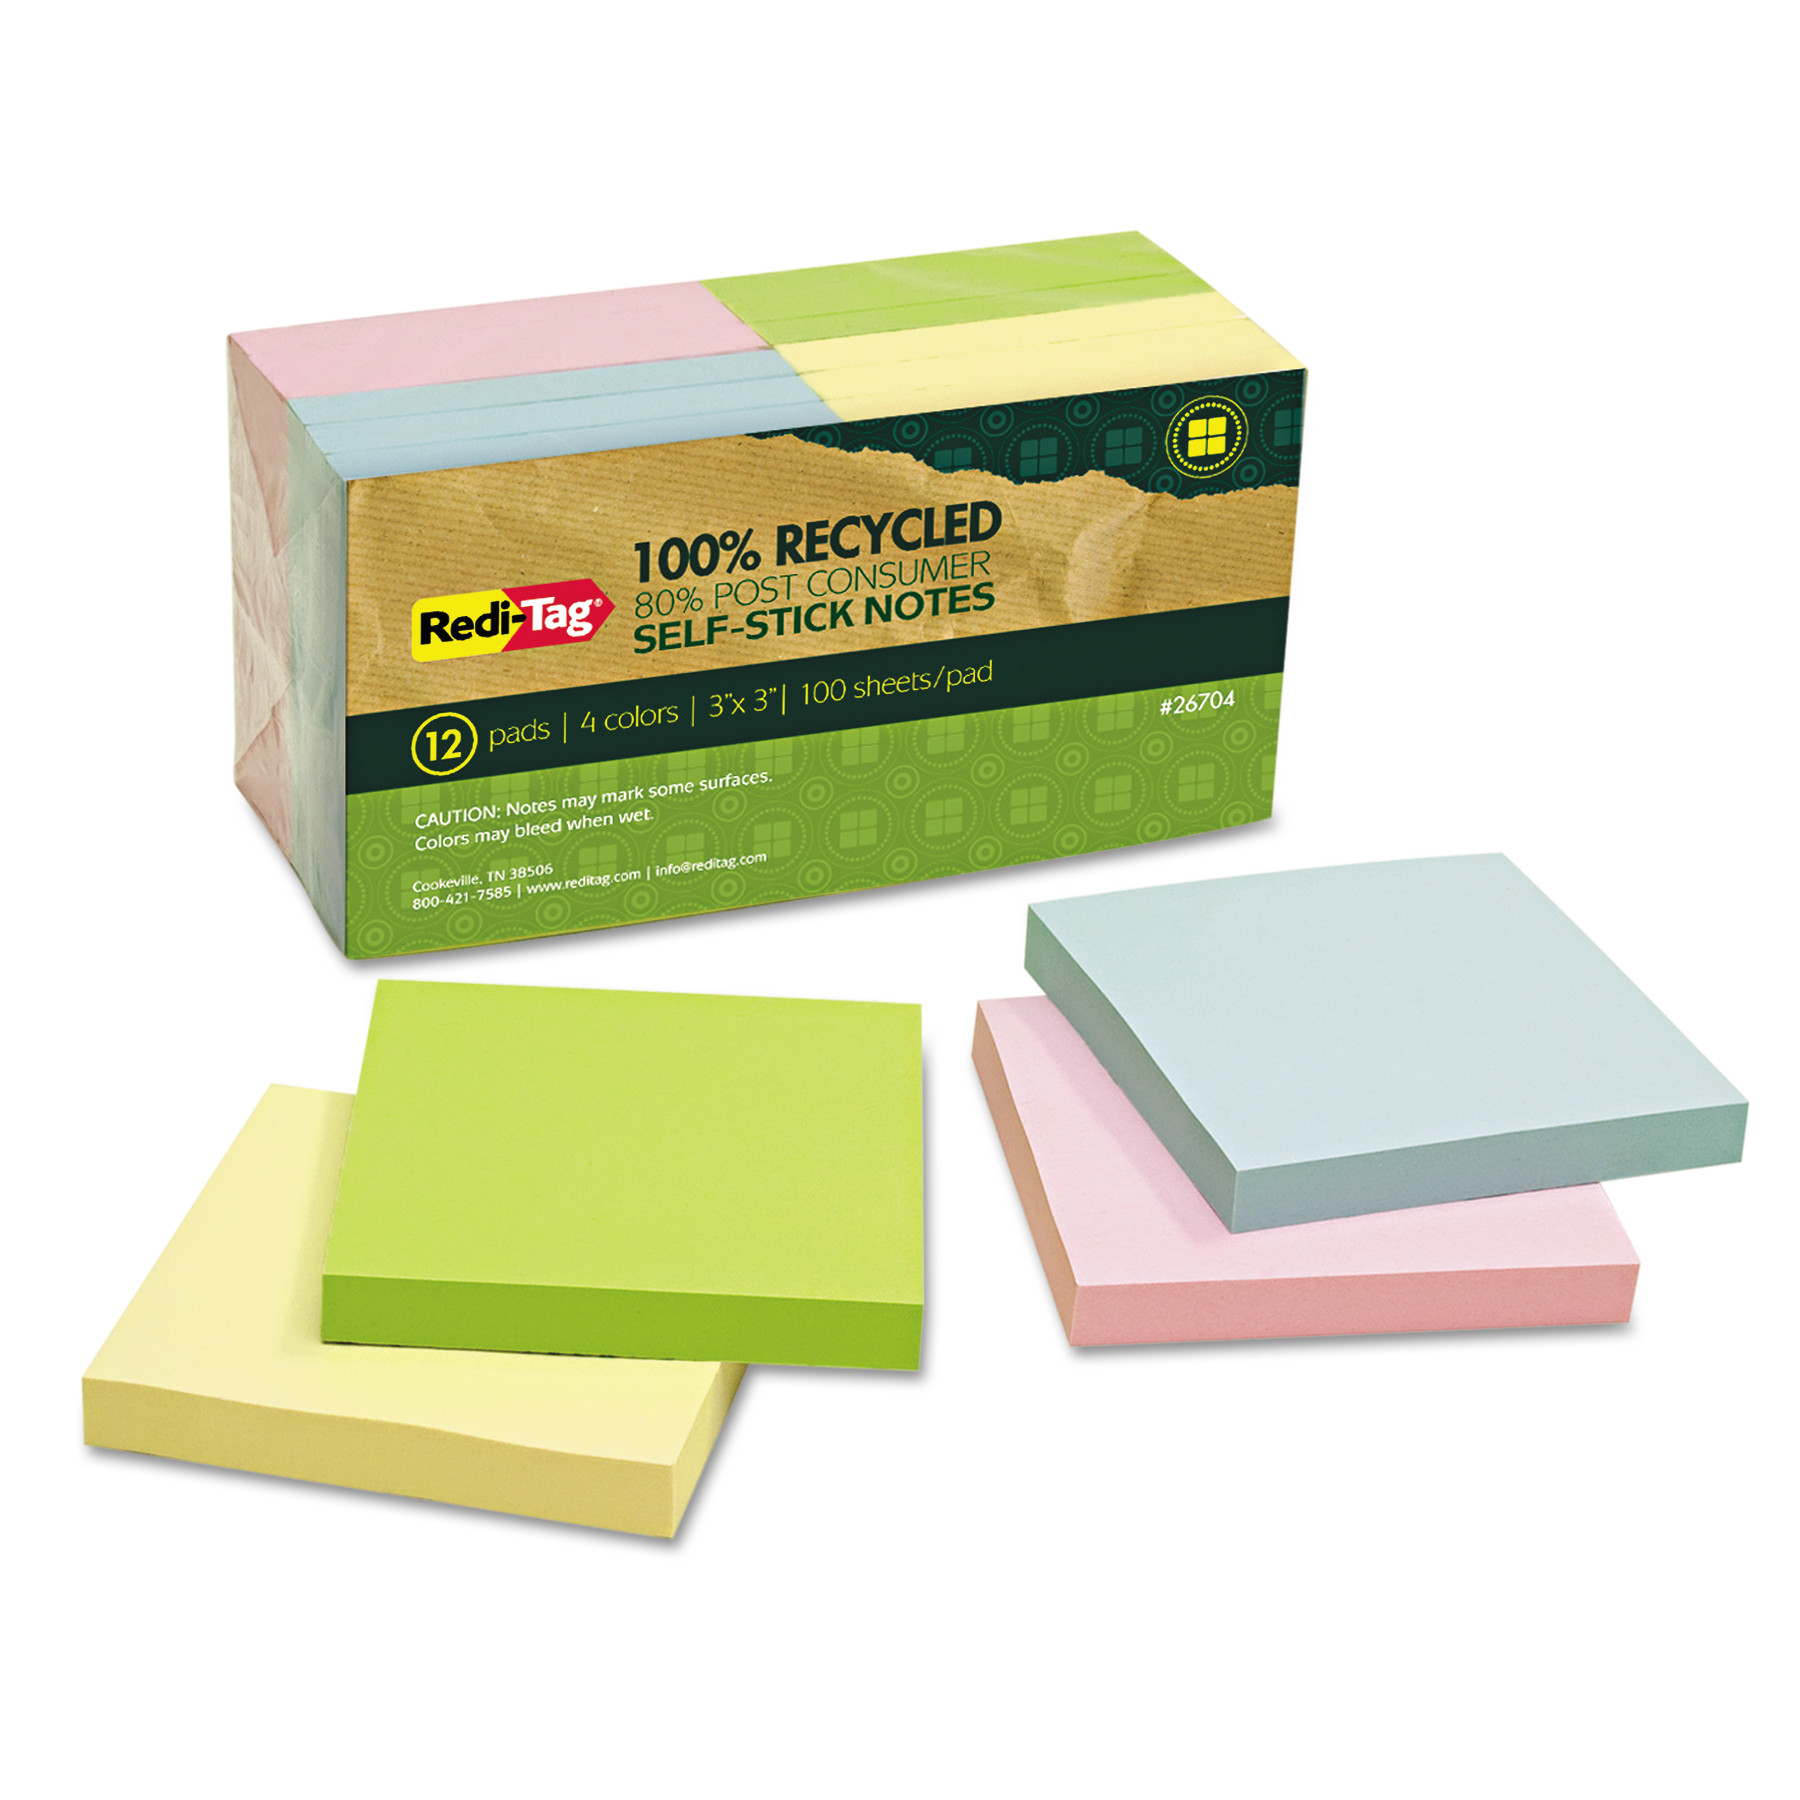 Redi-Tag 100% Recycled Notes, 3 x 3, Four Colors, 12 100-Sheet Pads/Pack -RTG26704